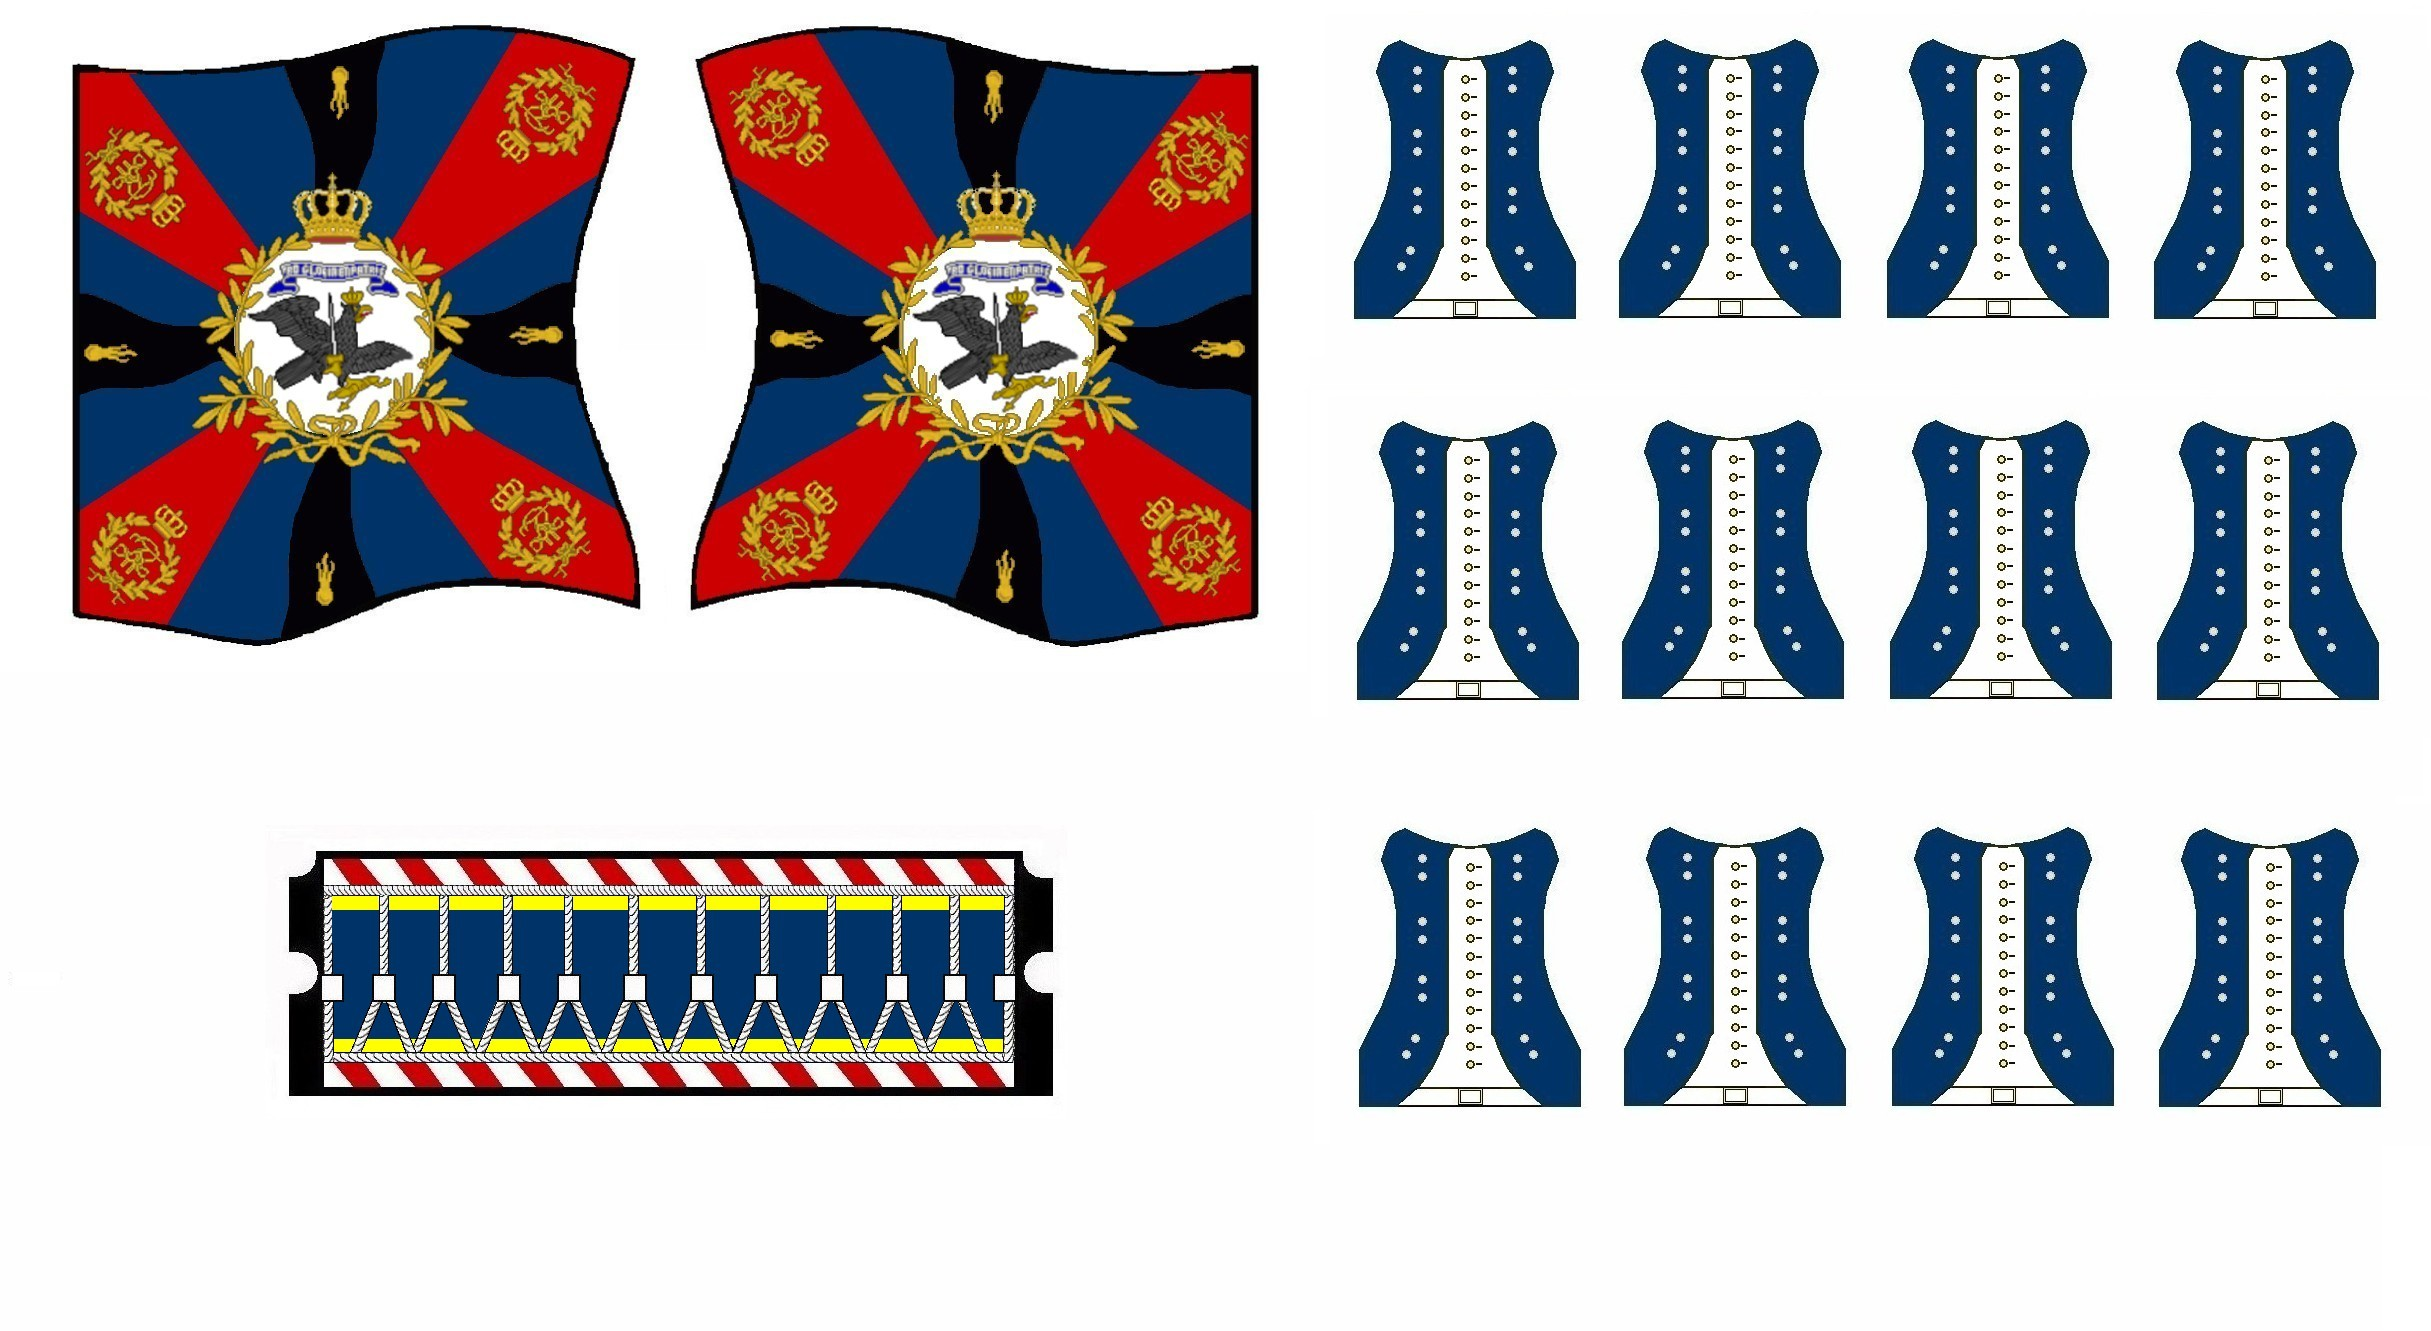 Uniform_258_Preussisches_32th_Musketeer_Regiment